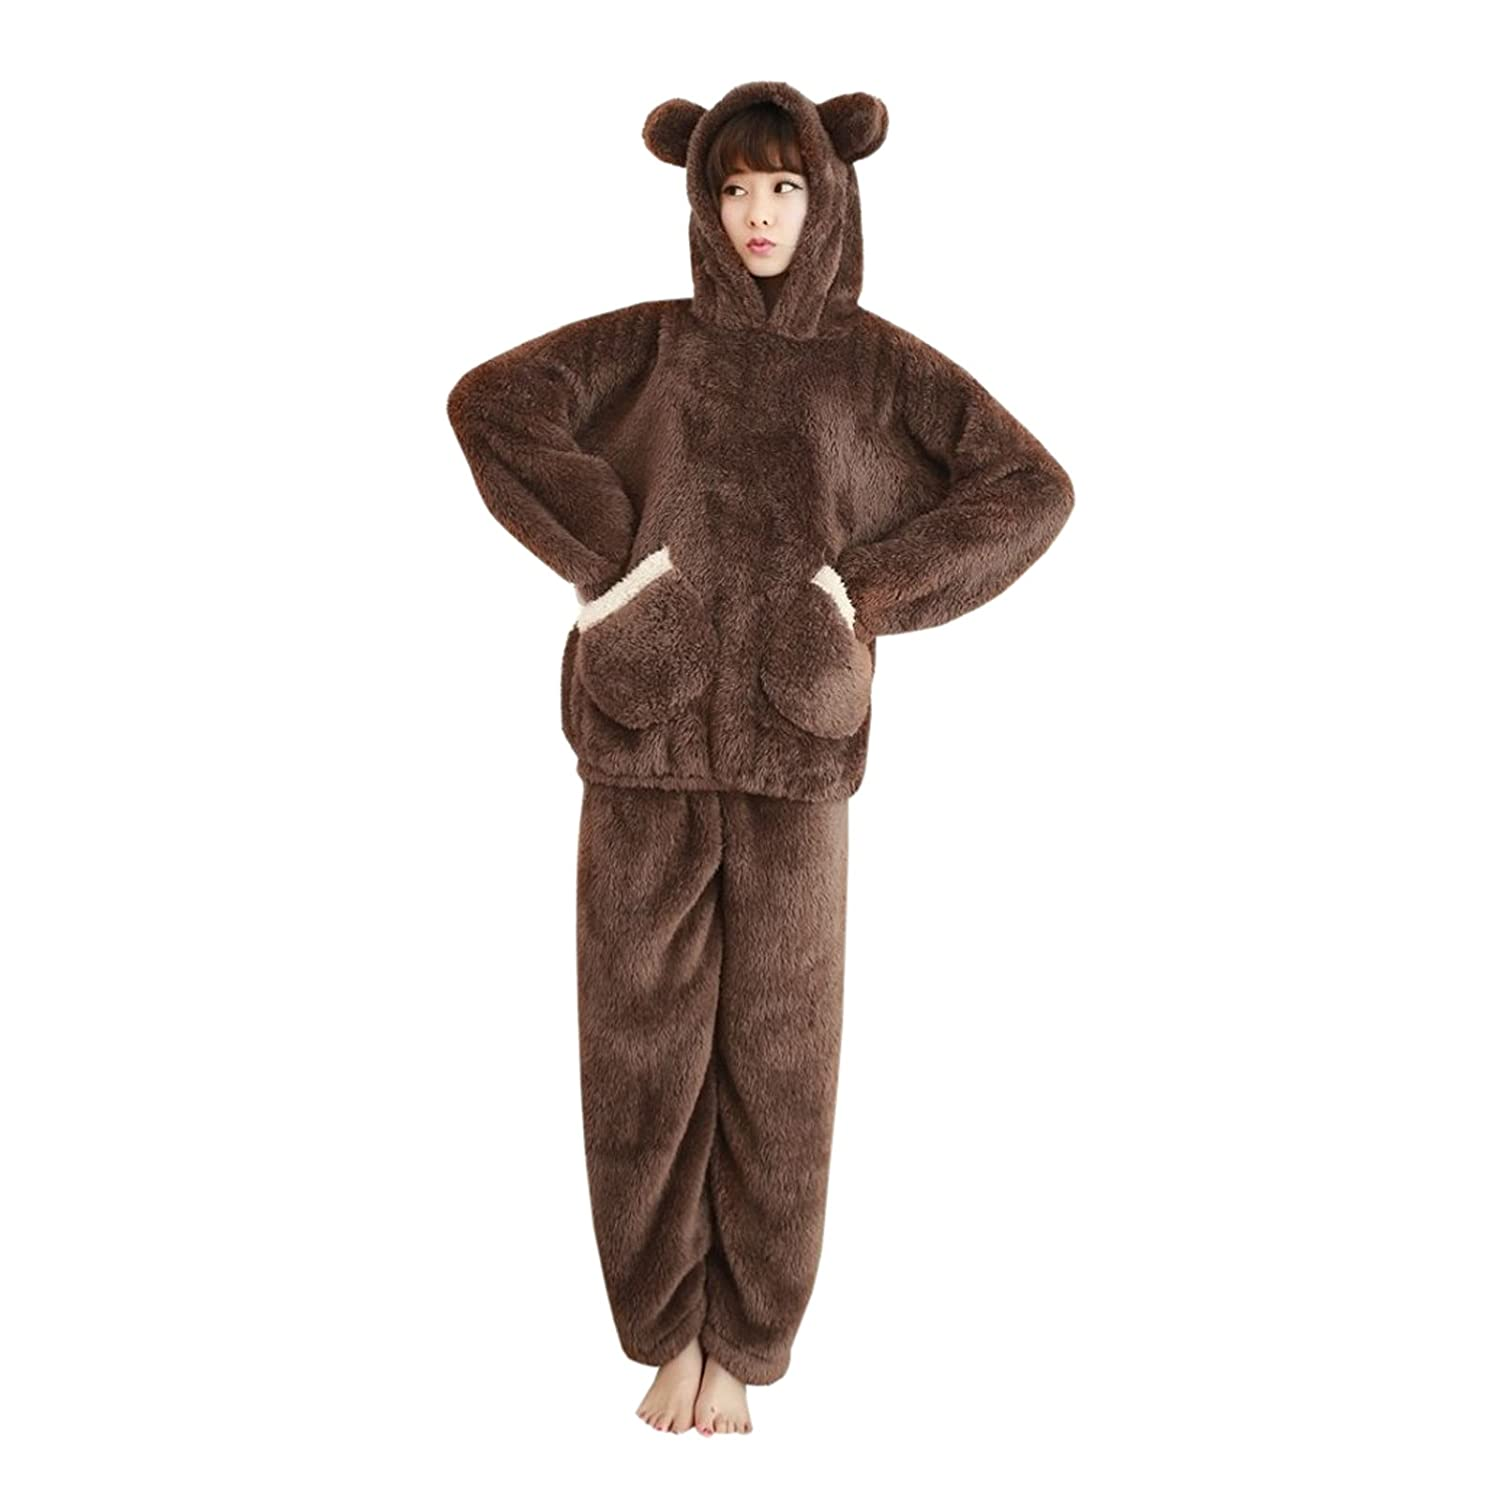 WSLCN Pyjamas Set Unisex Animal Fleece Hooded Cosplay Costume Bear Women Cute Winter Nightwear Flannel Cosplay Warm Kigurumi Costume Halloween Party Christmas Marron X-Large SY0451-BXL